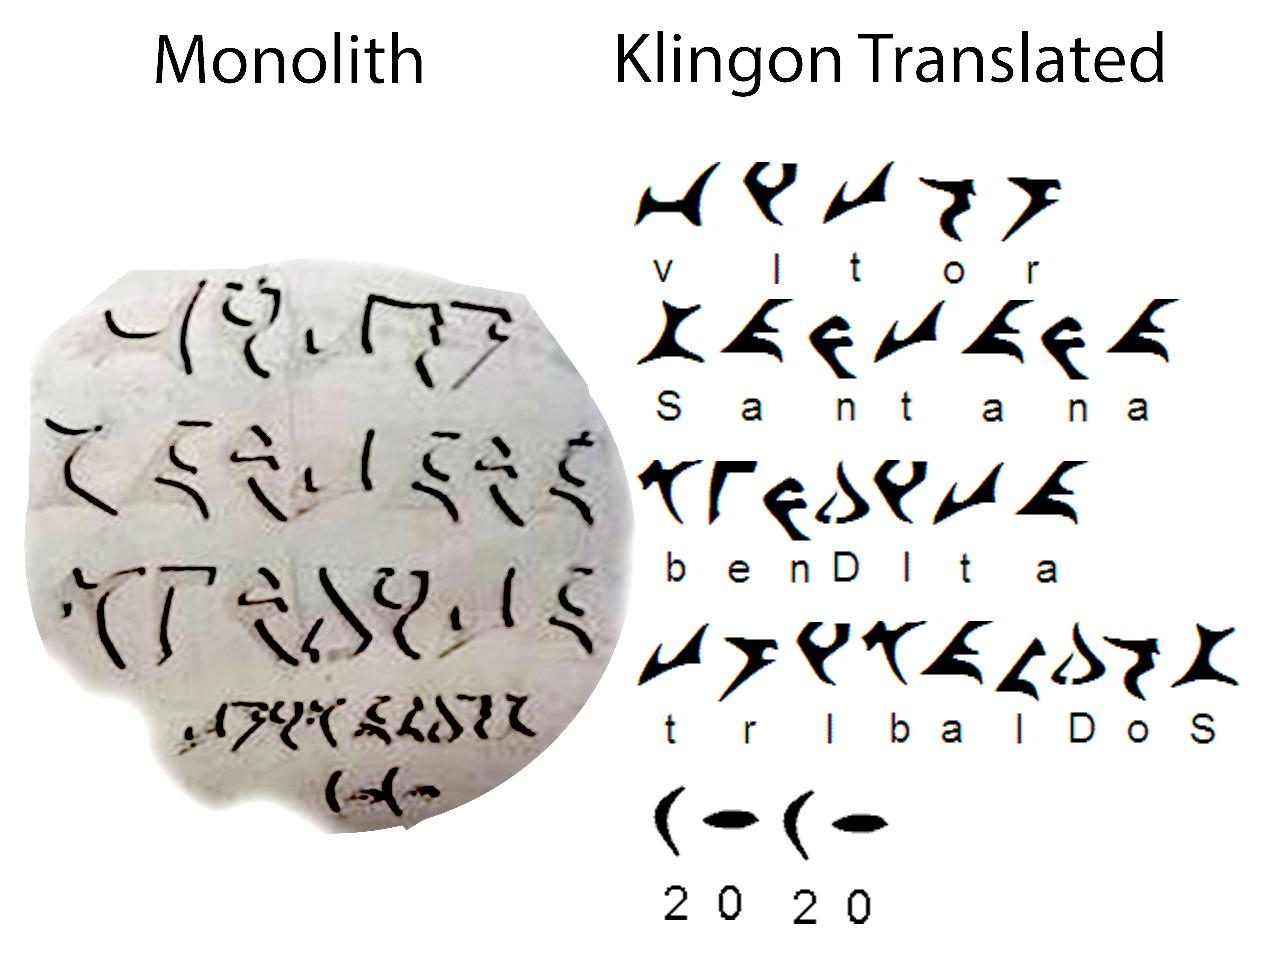 Visual Translation of the text on the Monolith.